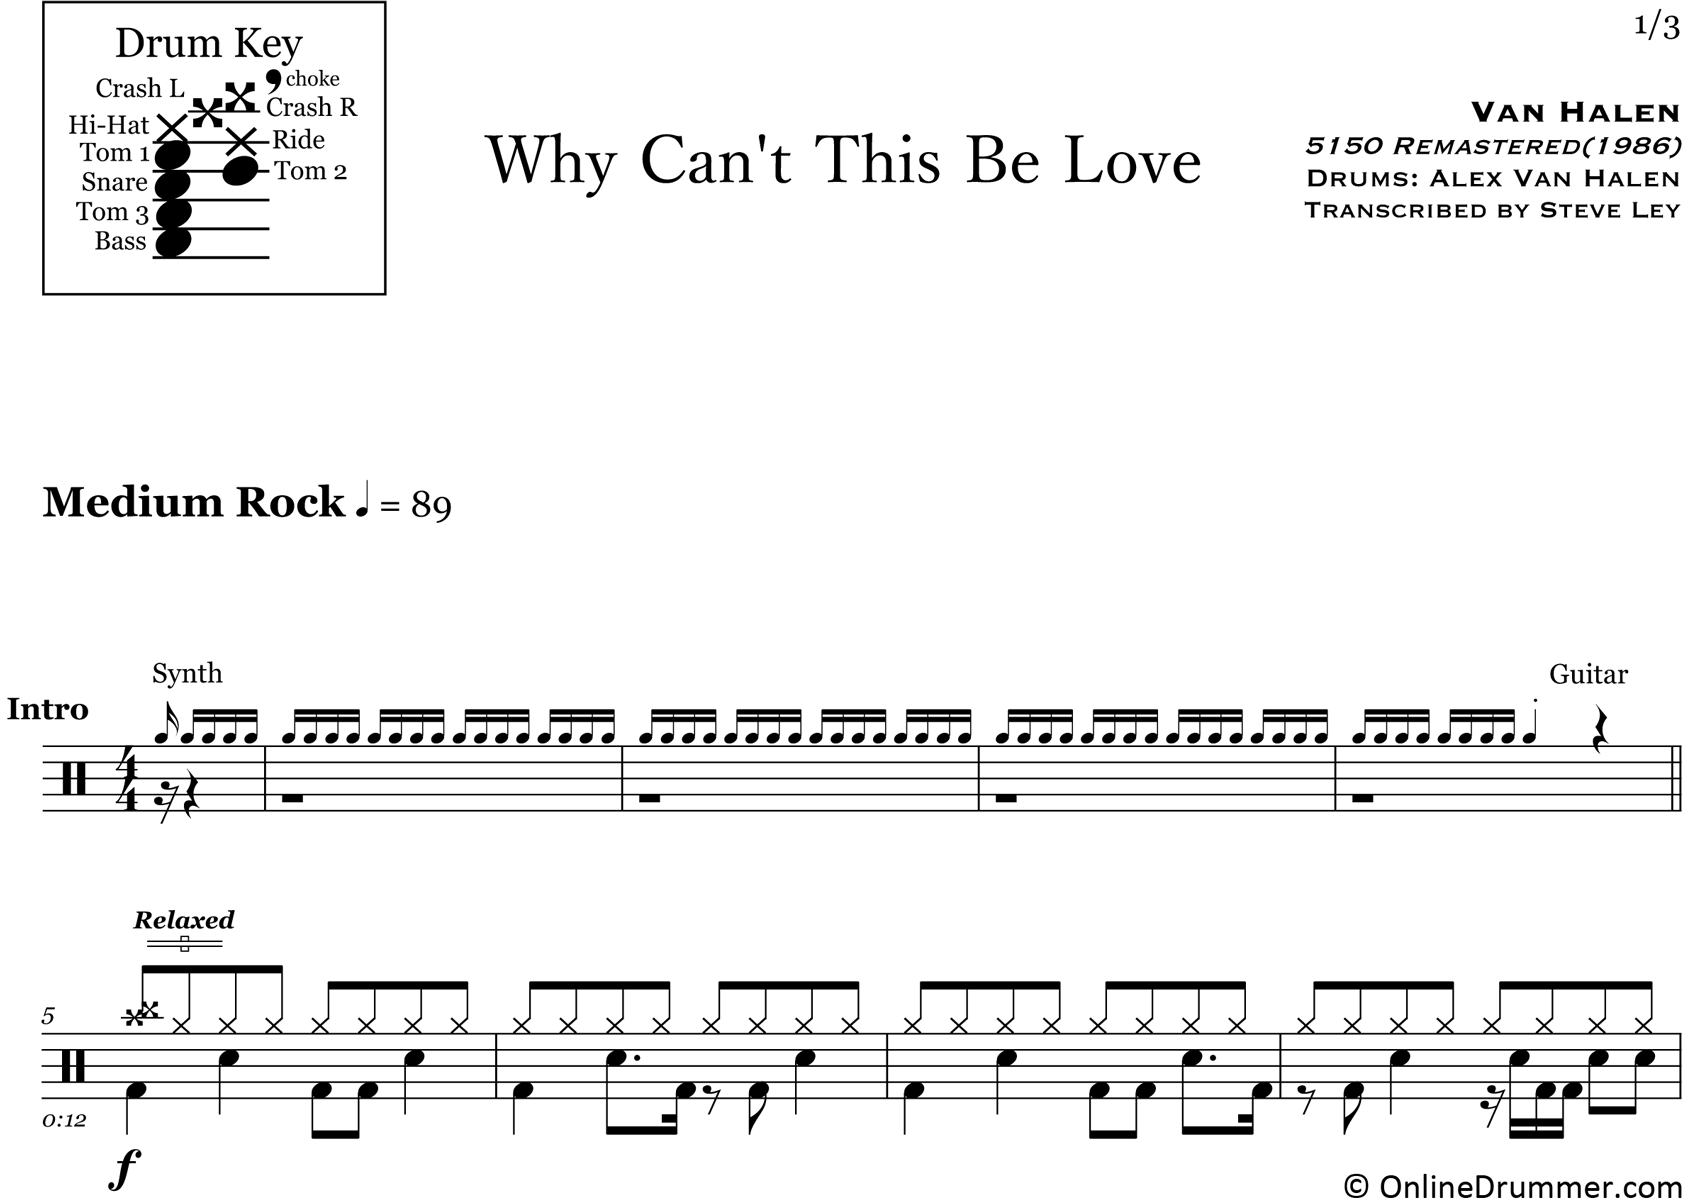 Why Can't This Be Love - Van Halen - Drum Sheet Music